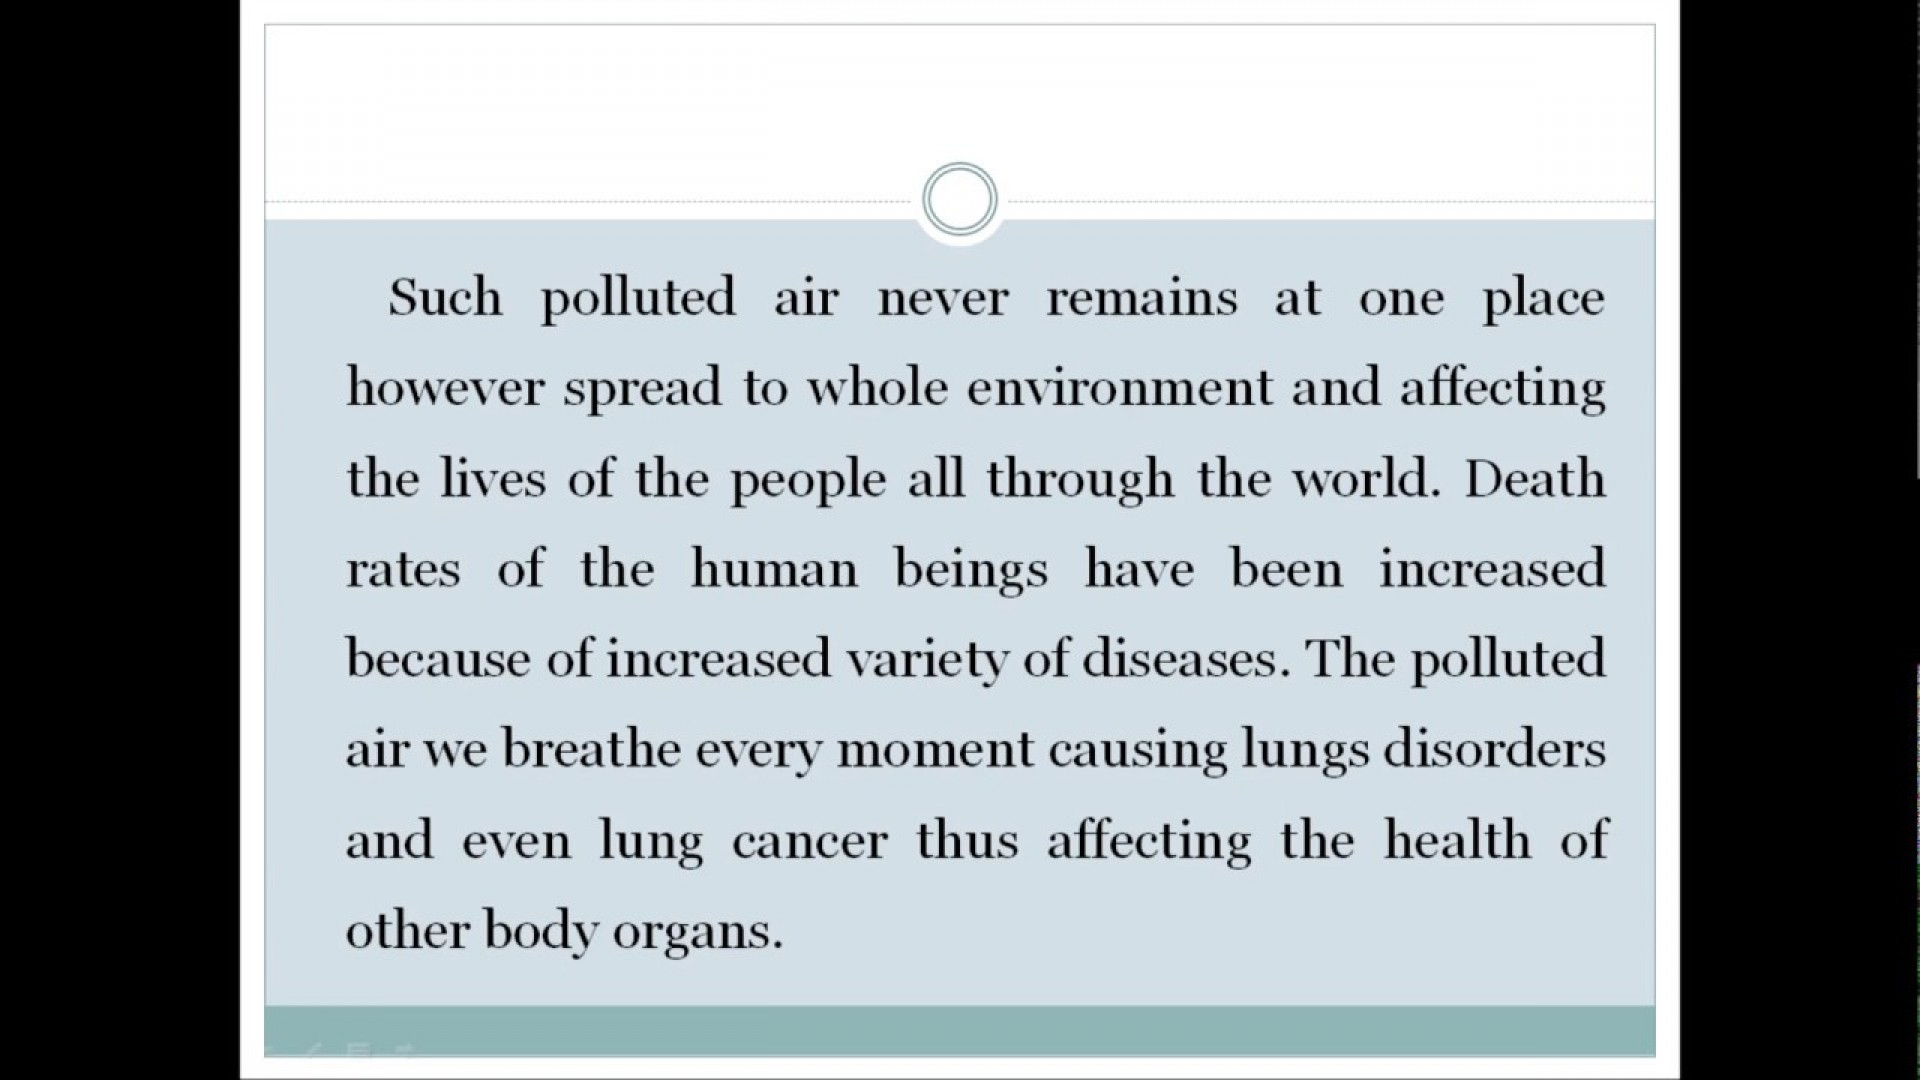 012 Essay Example Cause And Effect On Pollution Astounding Environmental Air About Land 1920